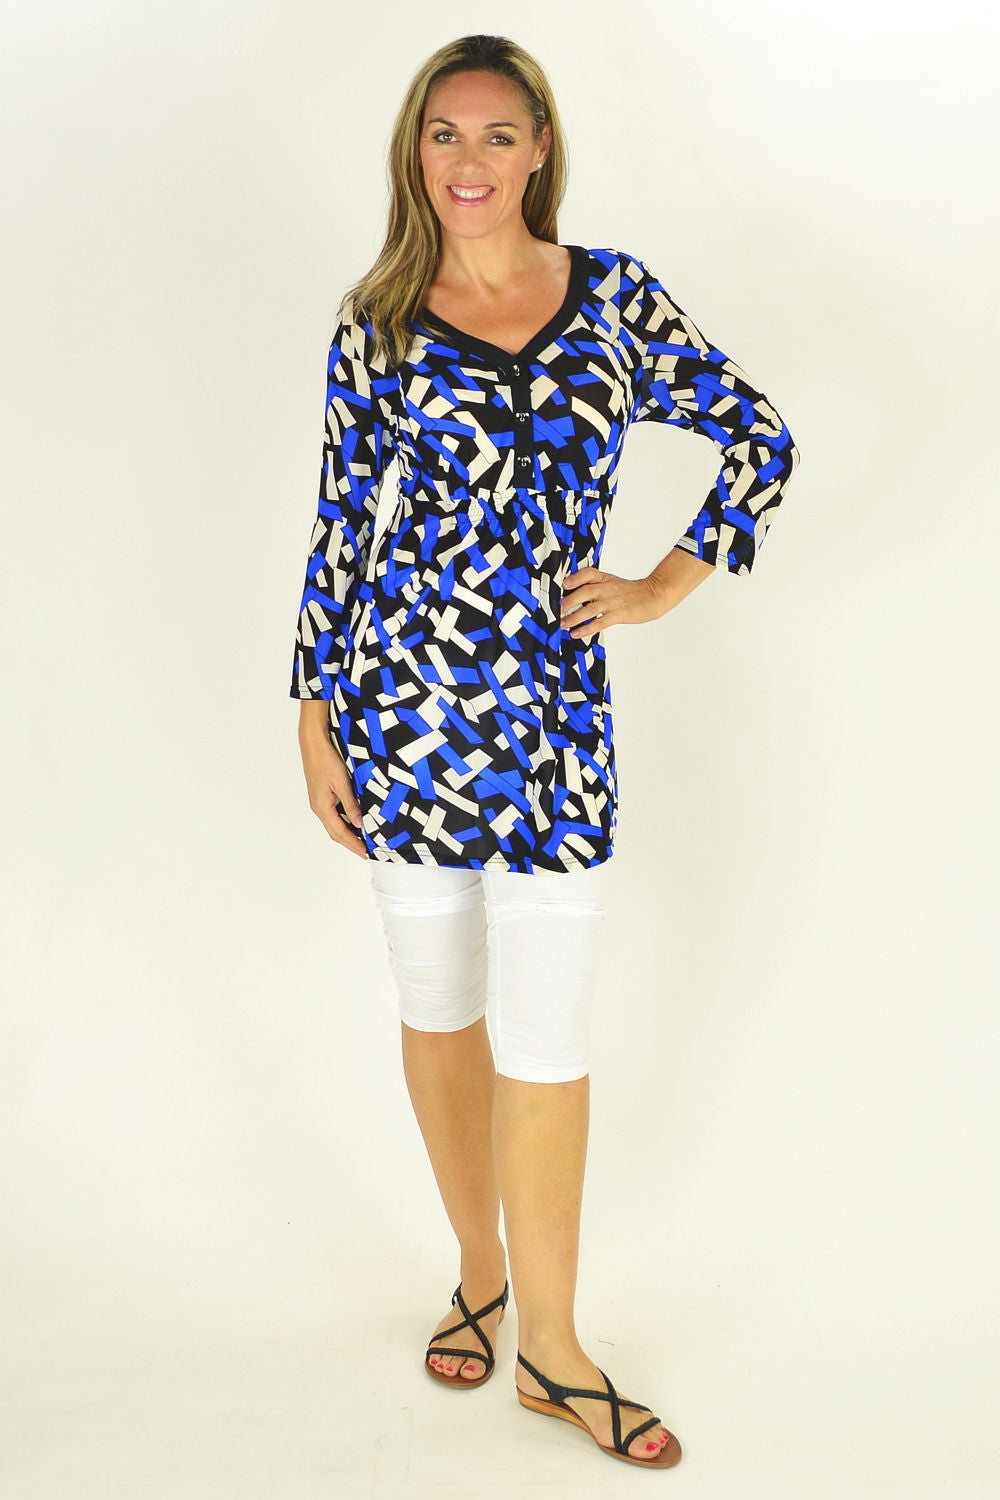 Shapes Tunic - at I Love Tunics @ www.ilovetunics.com = Number One! Tunics Destination